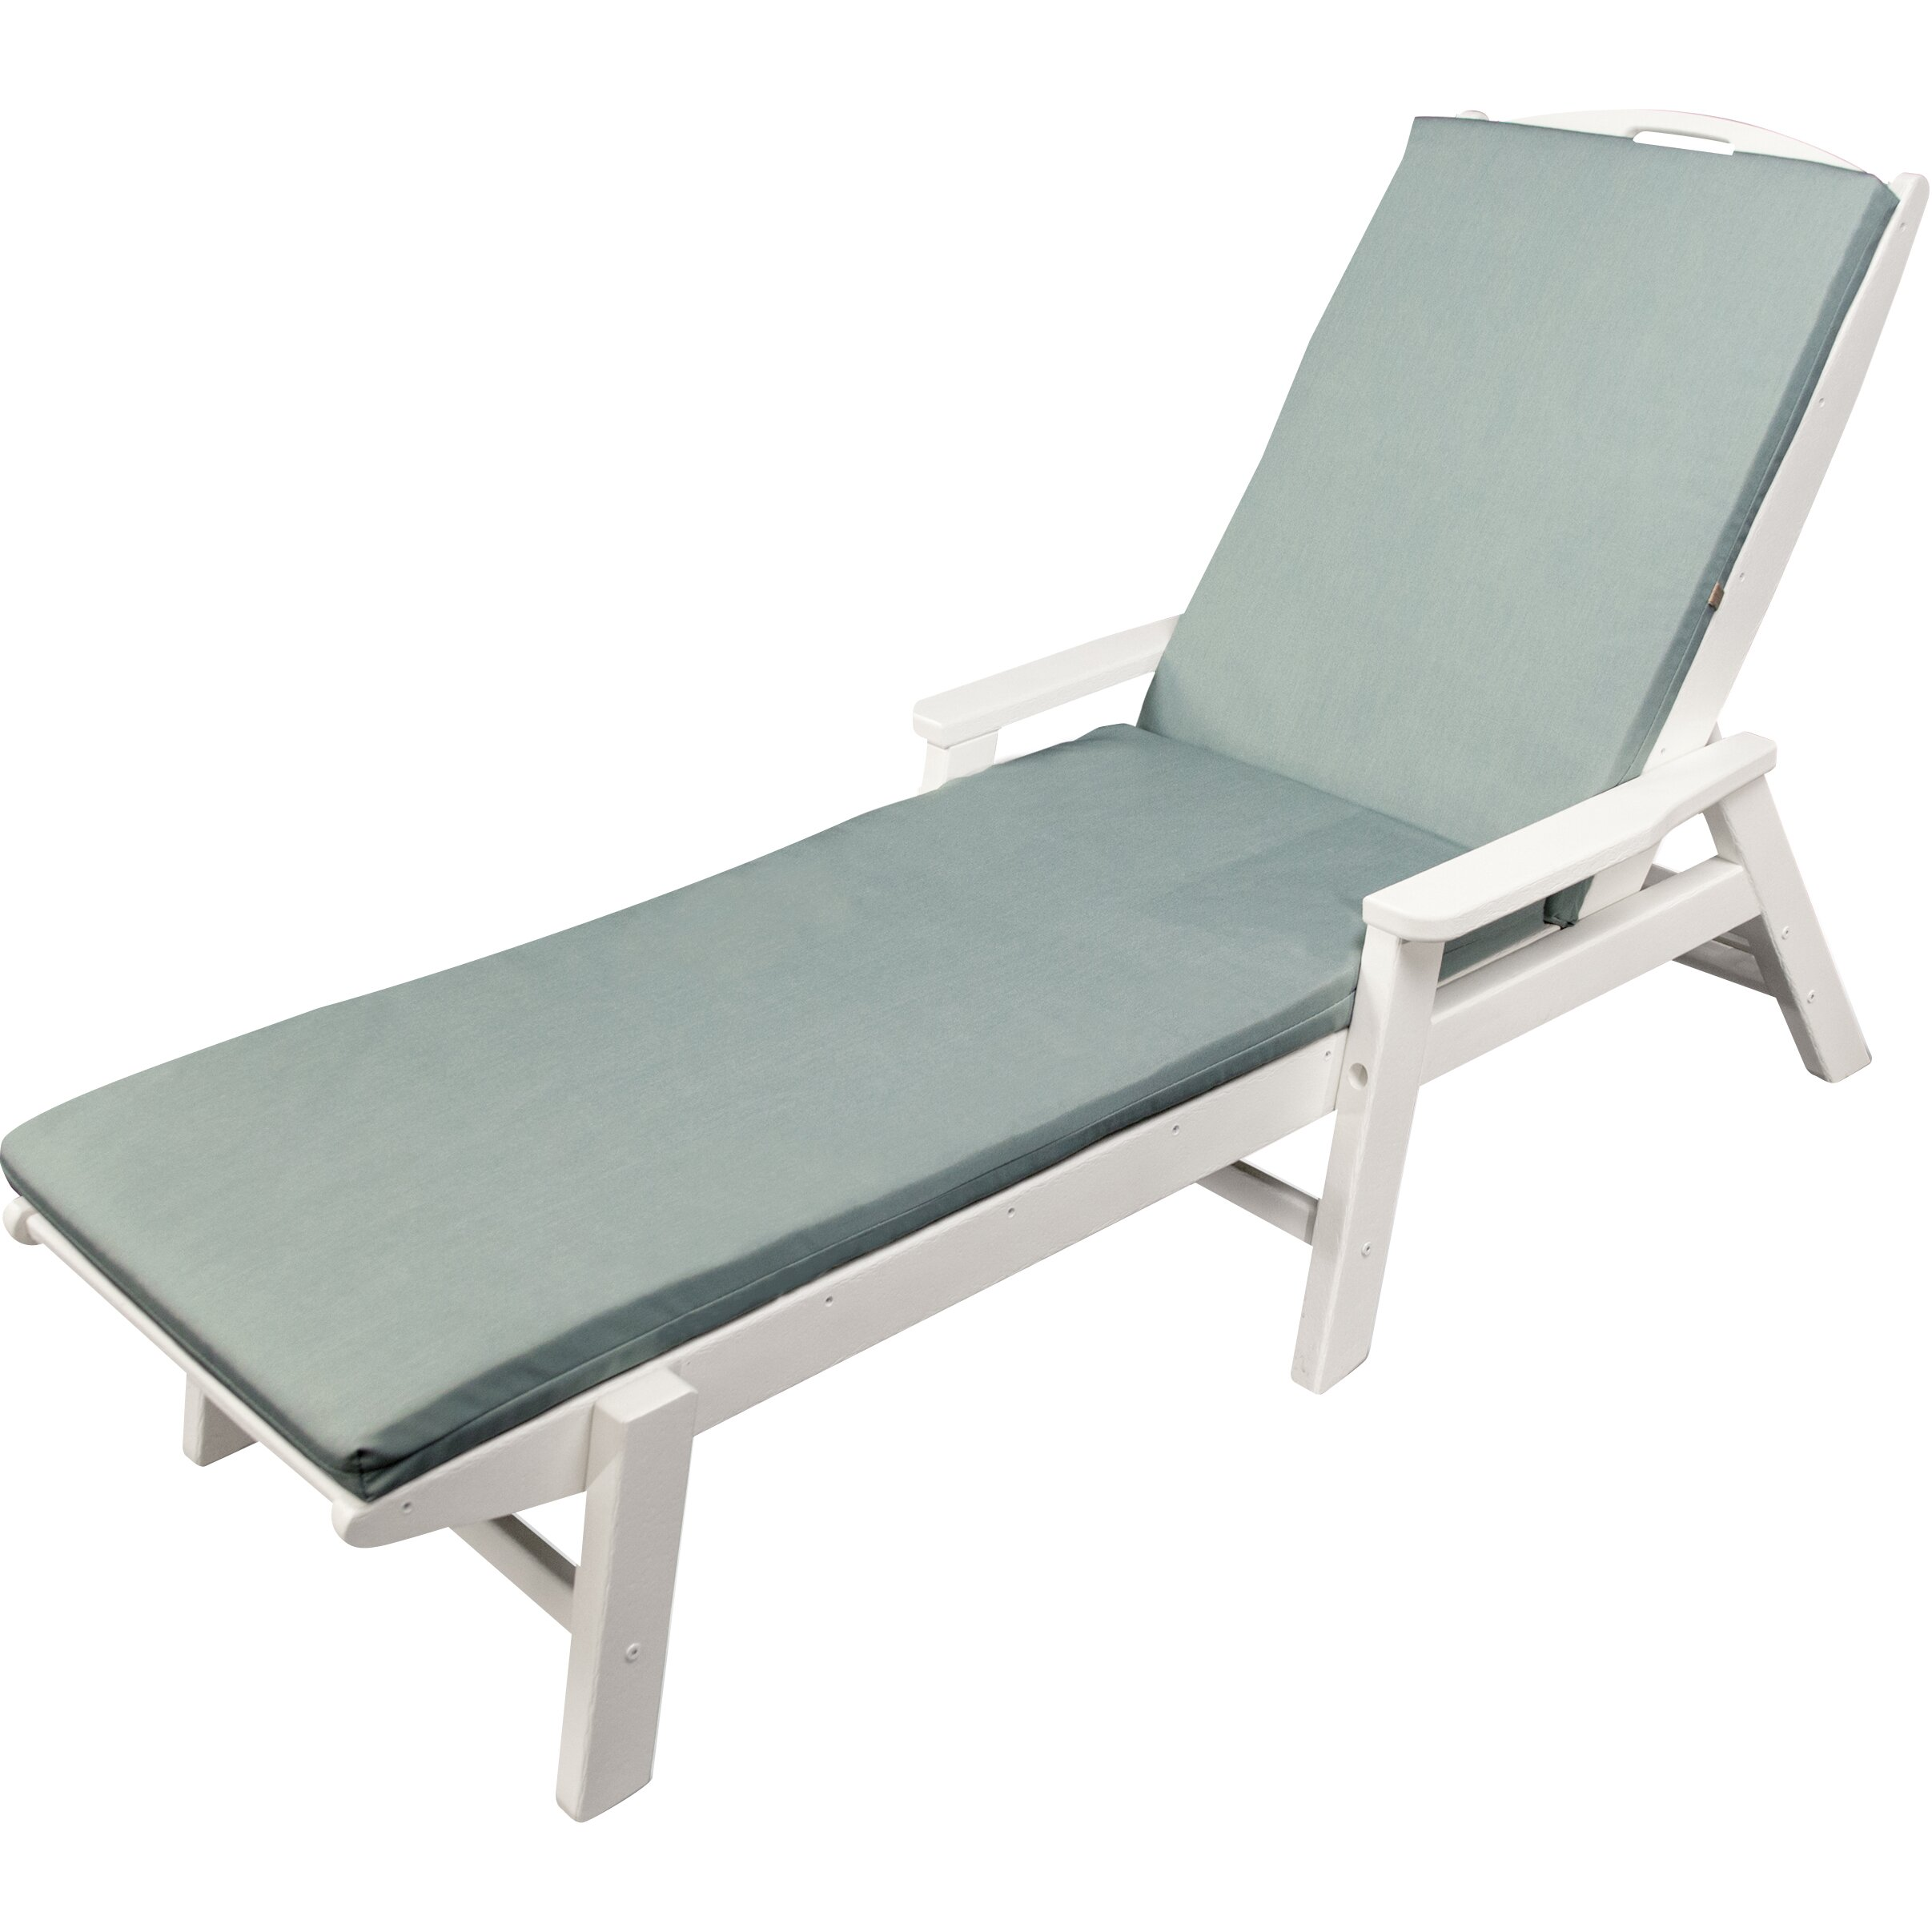 Ateeva Outdoor Chaise Lounge Cushion & Reviews